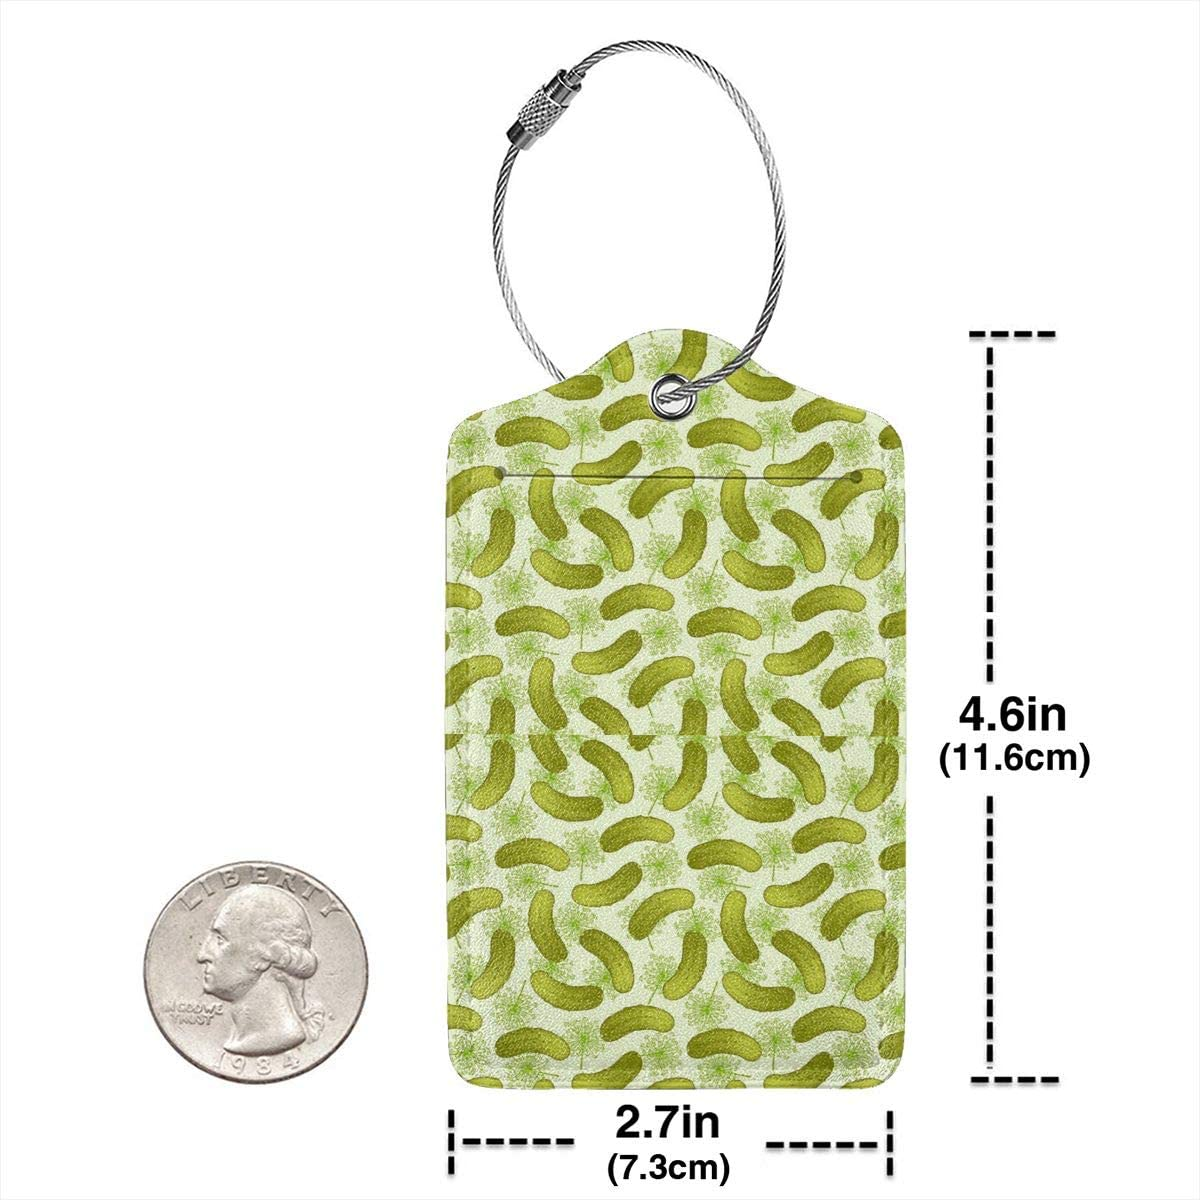 Dill Pickles Leather Luggage Tags Personalized Travel Accessories with Privacy Flap